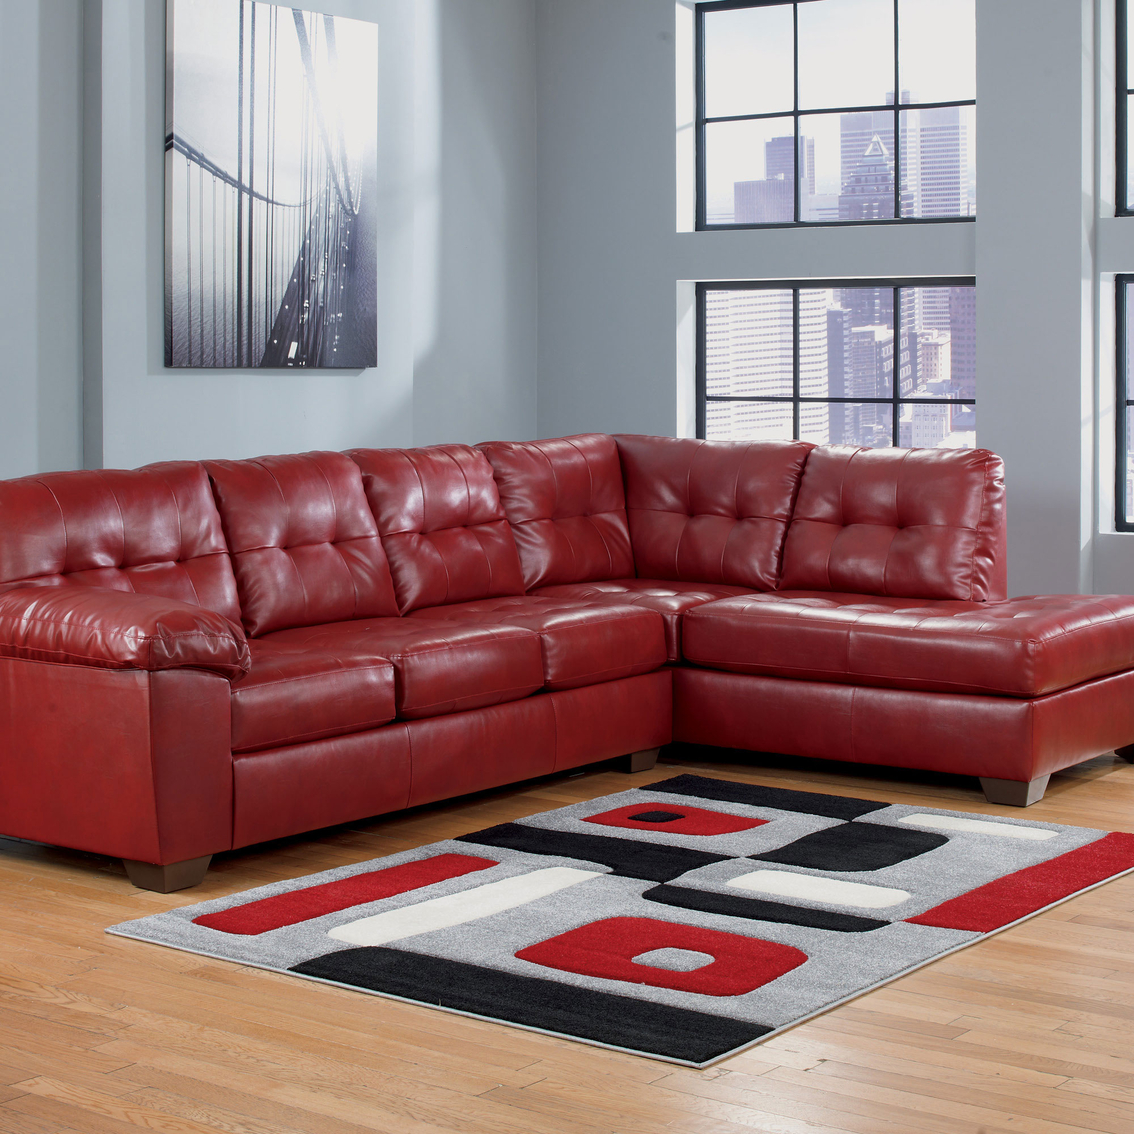 Signature Design By Ashley Alliston Durablend 2 Pc Sectional Raf Chaise Laf Sofa Sofas